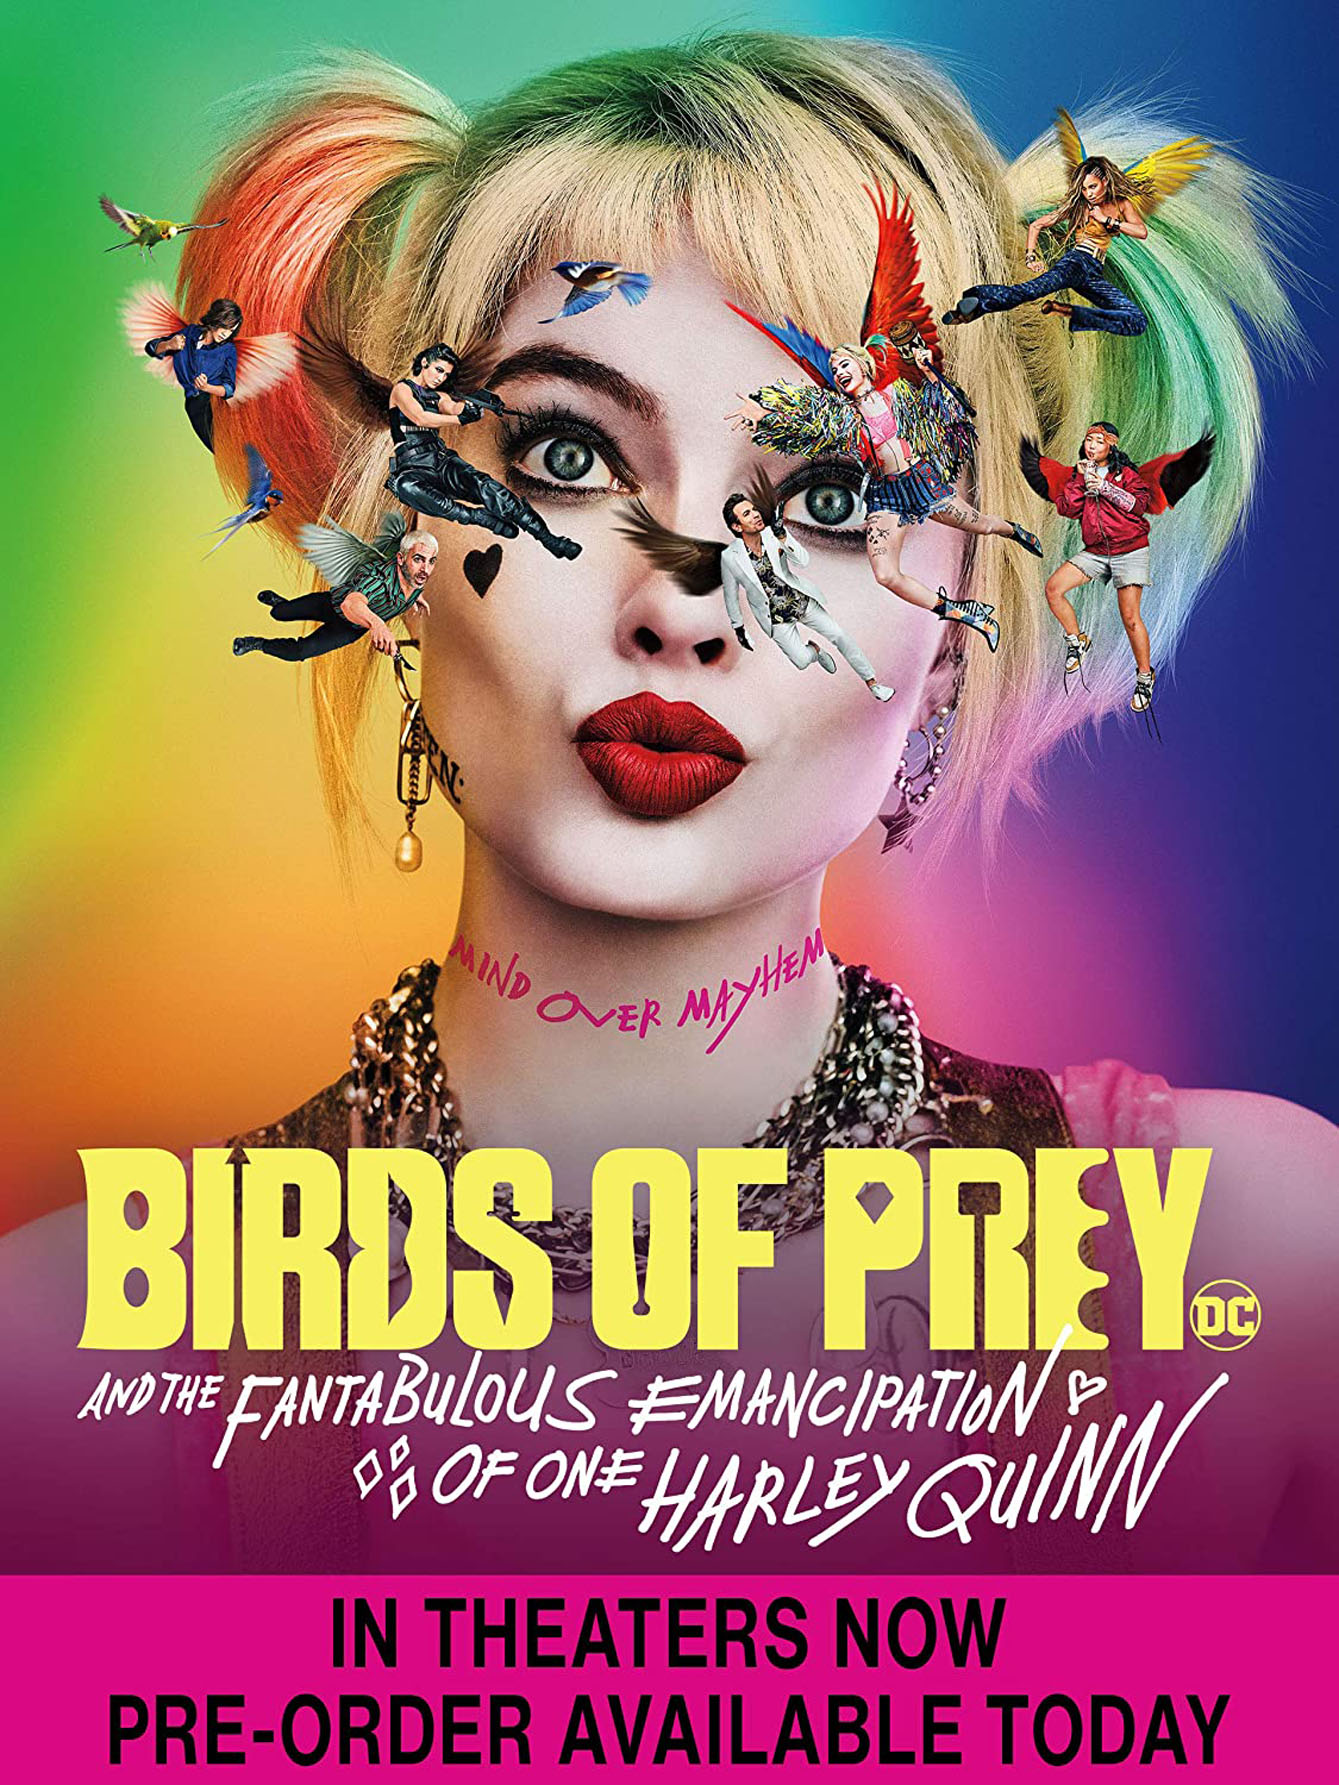 Birds Of Prey Call Of The Wild Lucifer More On Home Entertainment This Week Front Row Features